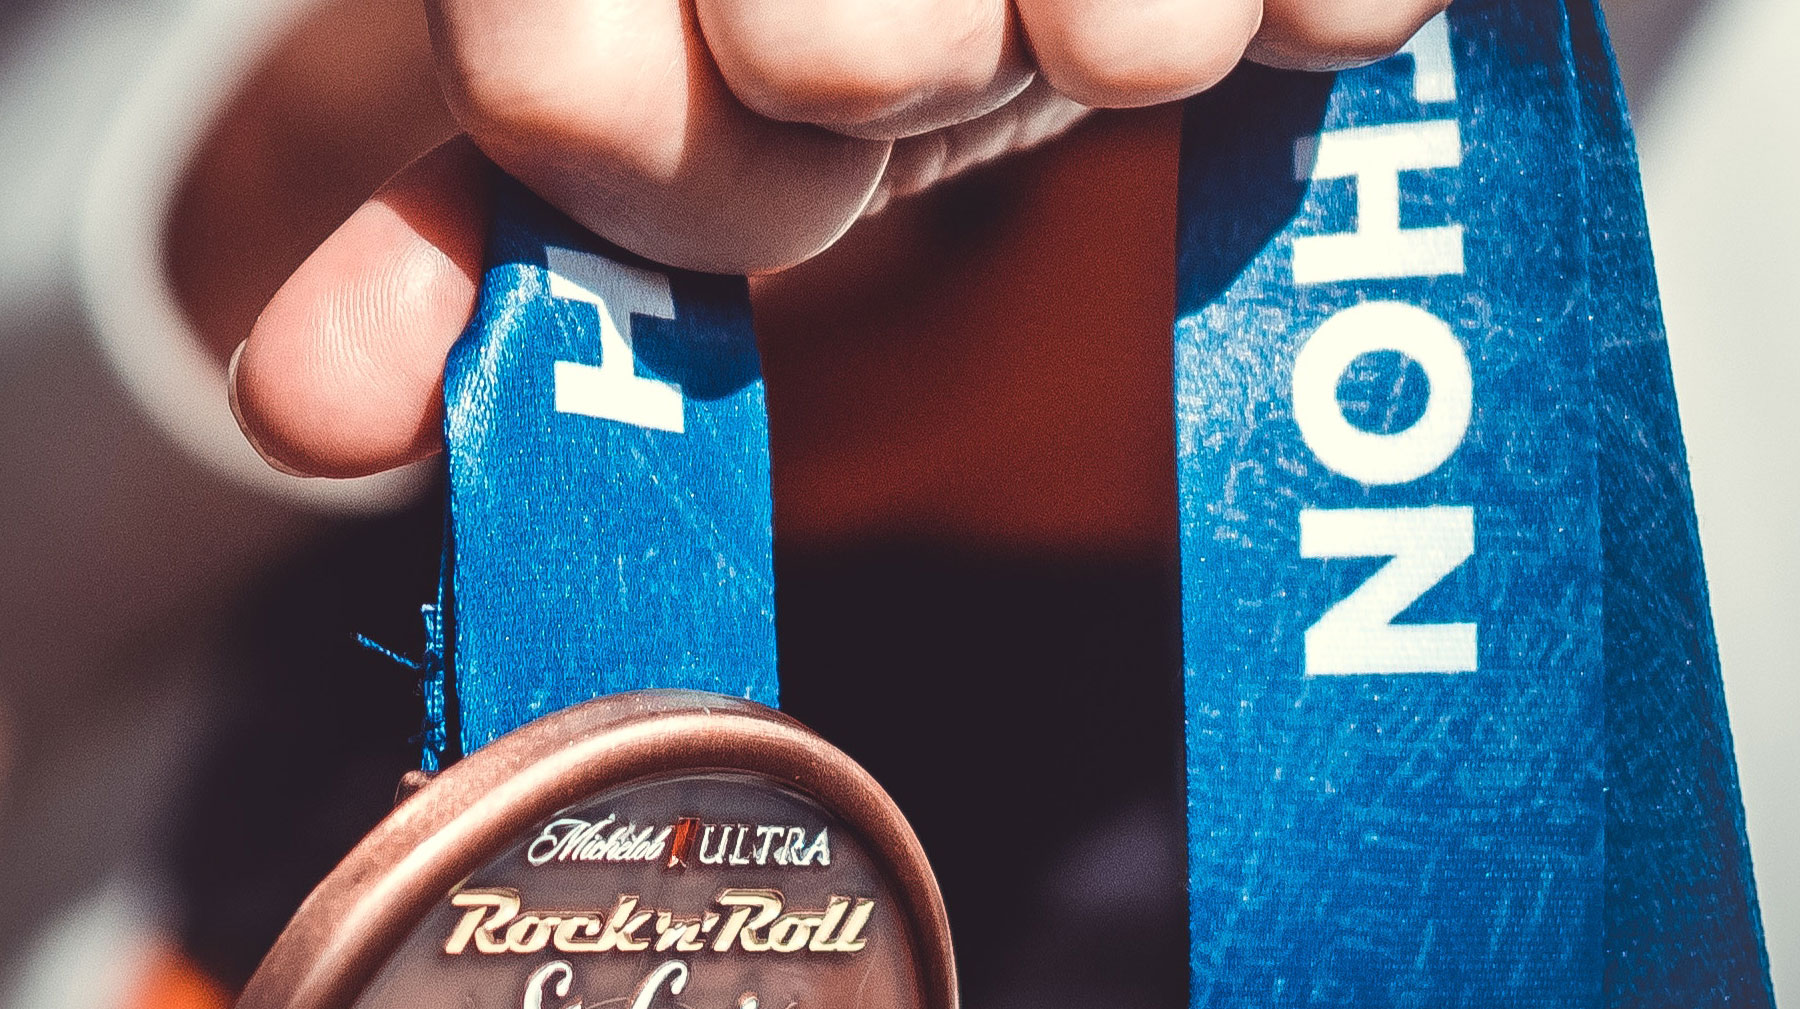 Medals and Ribbons to motivate yourself - Run Trainer